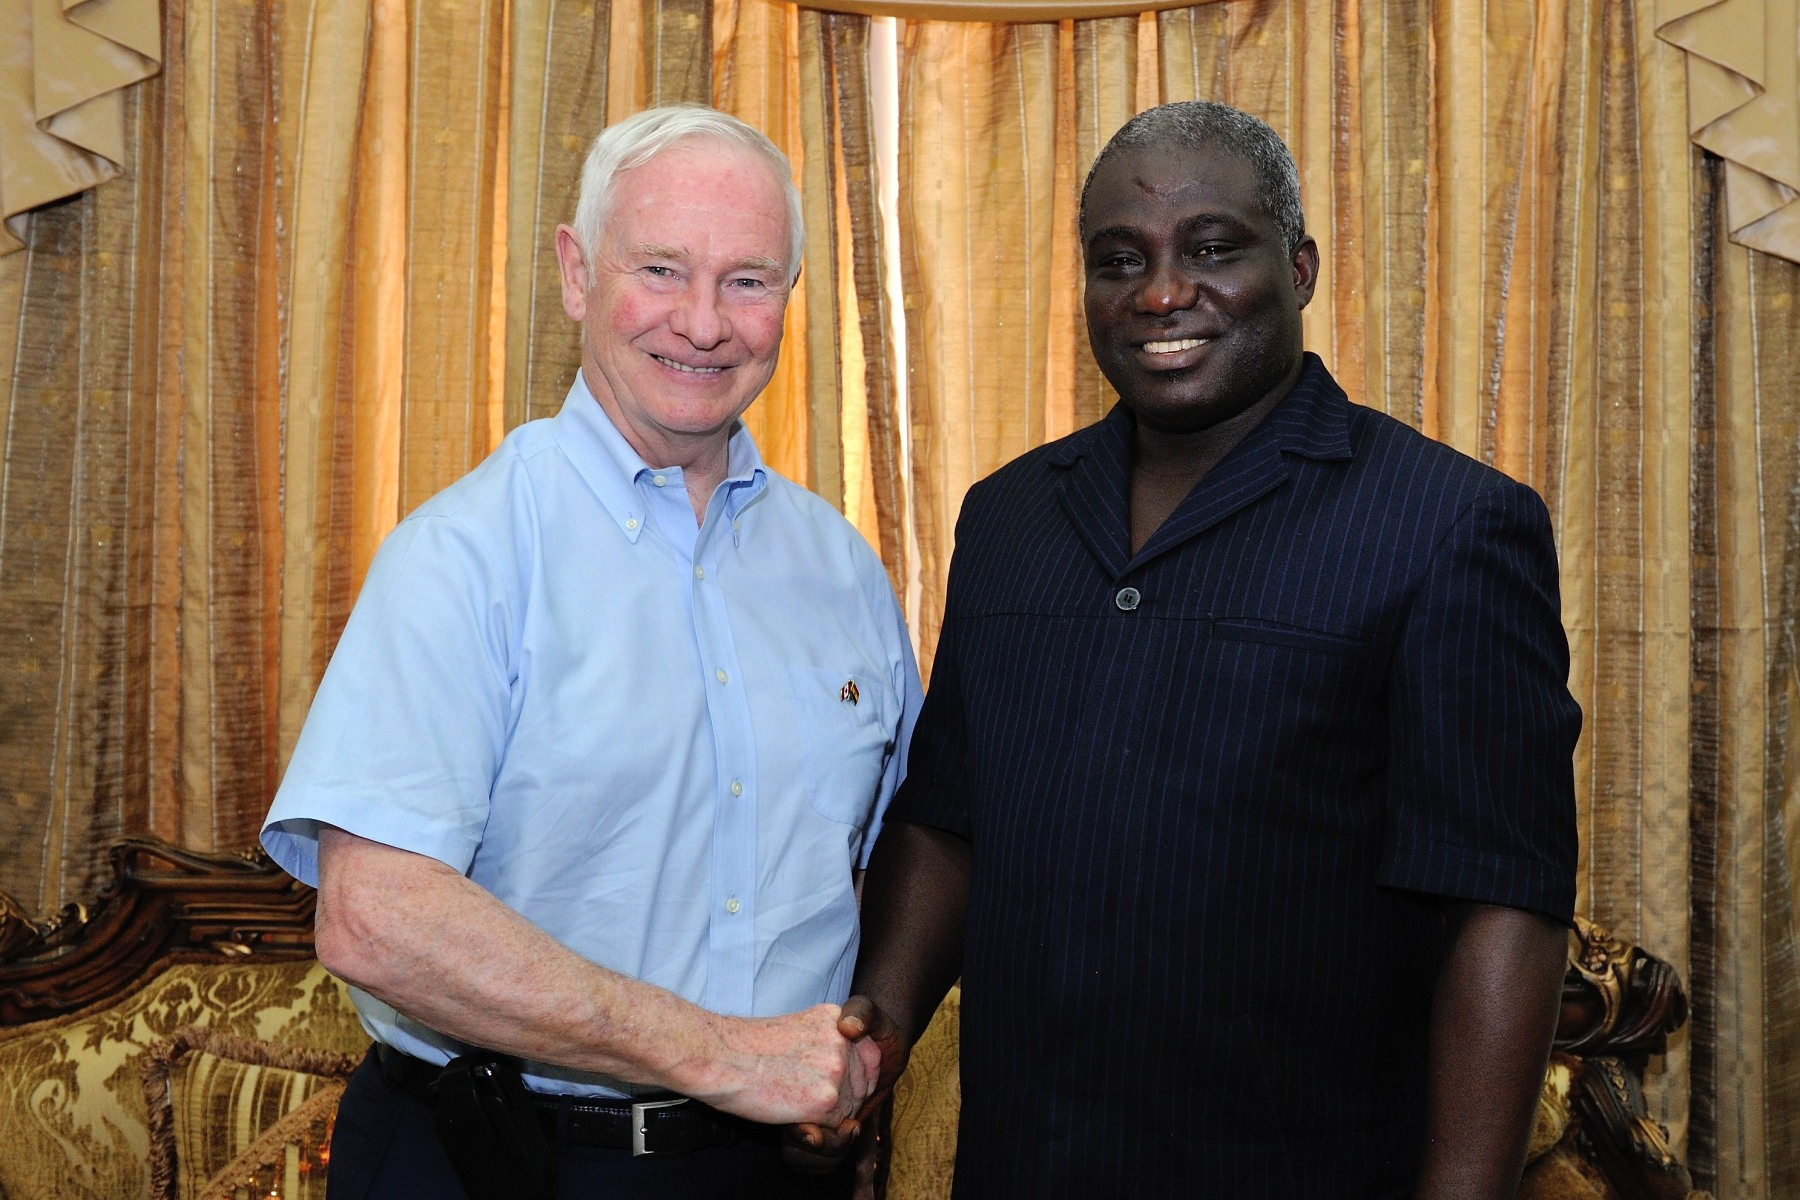 His Excellency and Mr. Opoku posed for a photo.